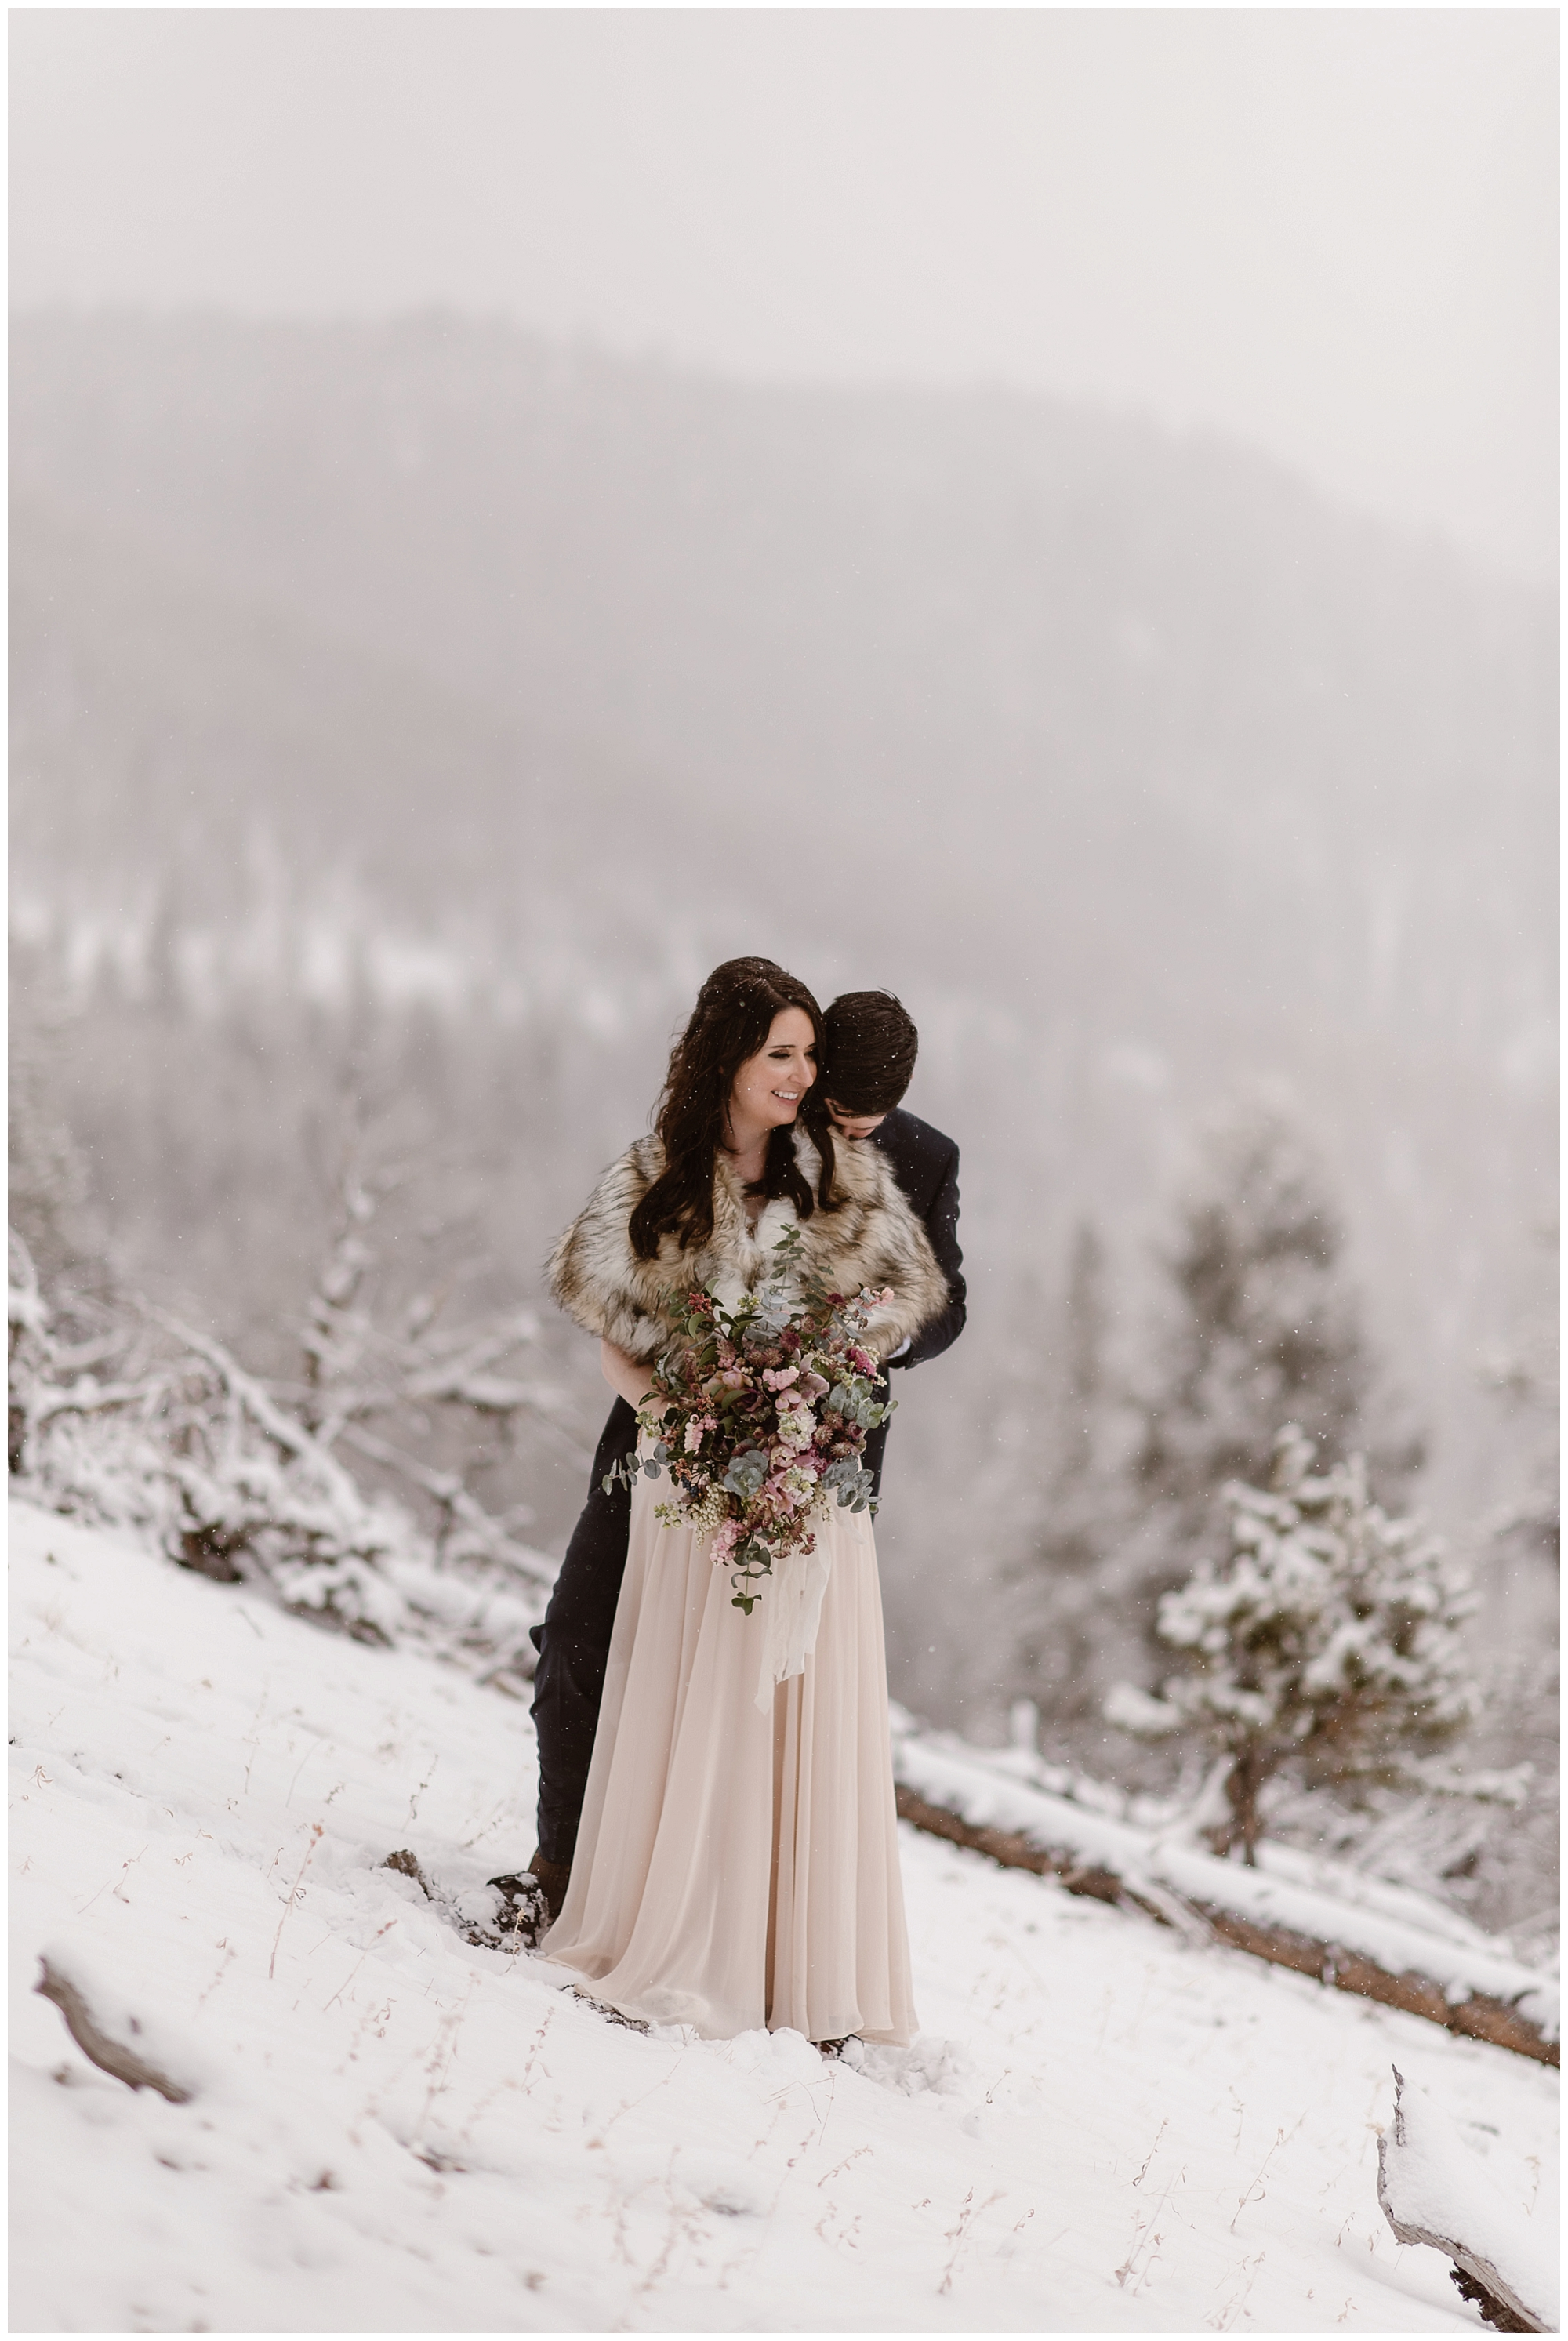 Marlayna and Austin embrace before their snowy winter elopement ceremony. They chose to self solemnize their wedding and travel to Colorado to get married. Photo by Adventure Instead, Maddie Mae Elopement Photographers.